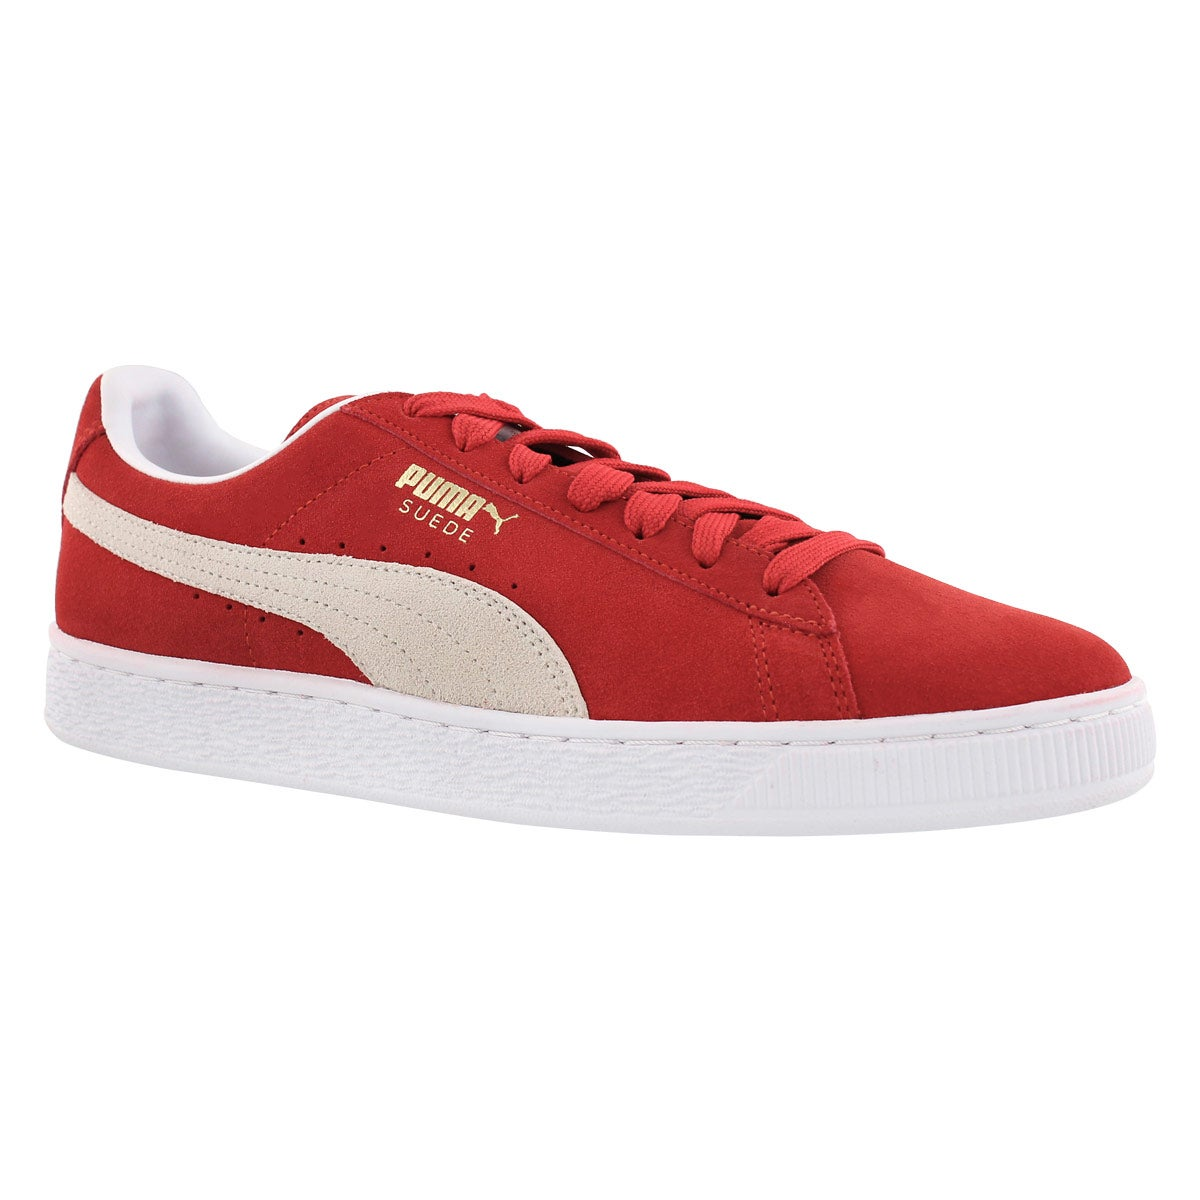 Men's SUEDE CLASSIC + red/wht sneakers